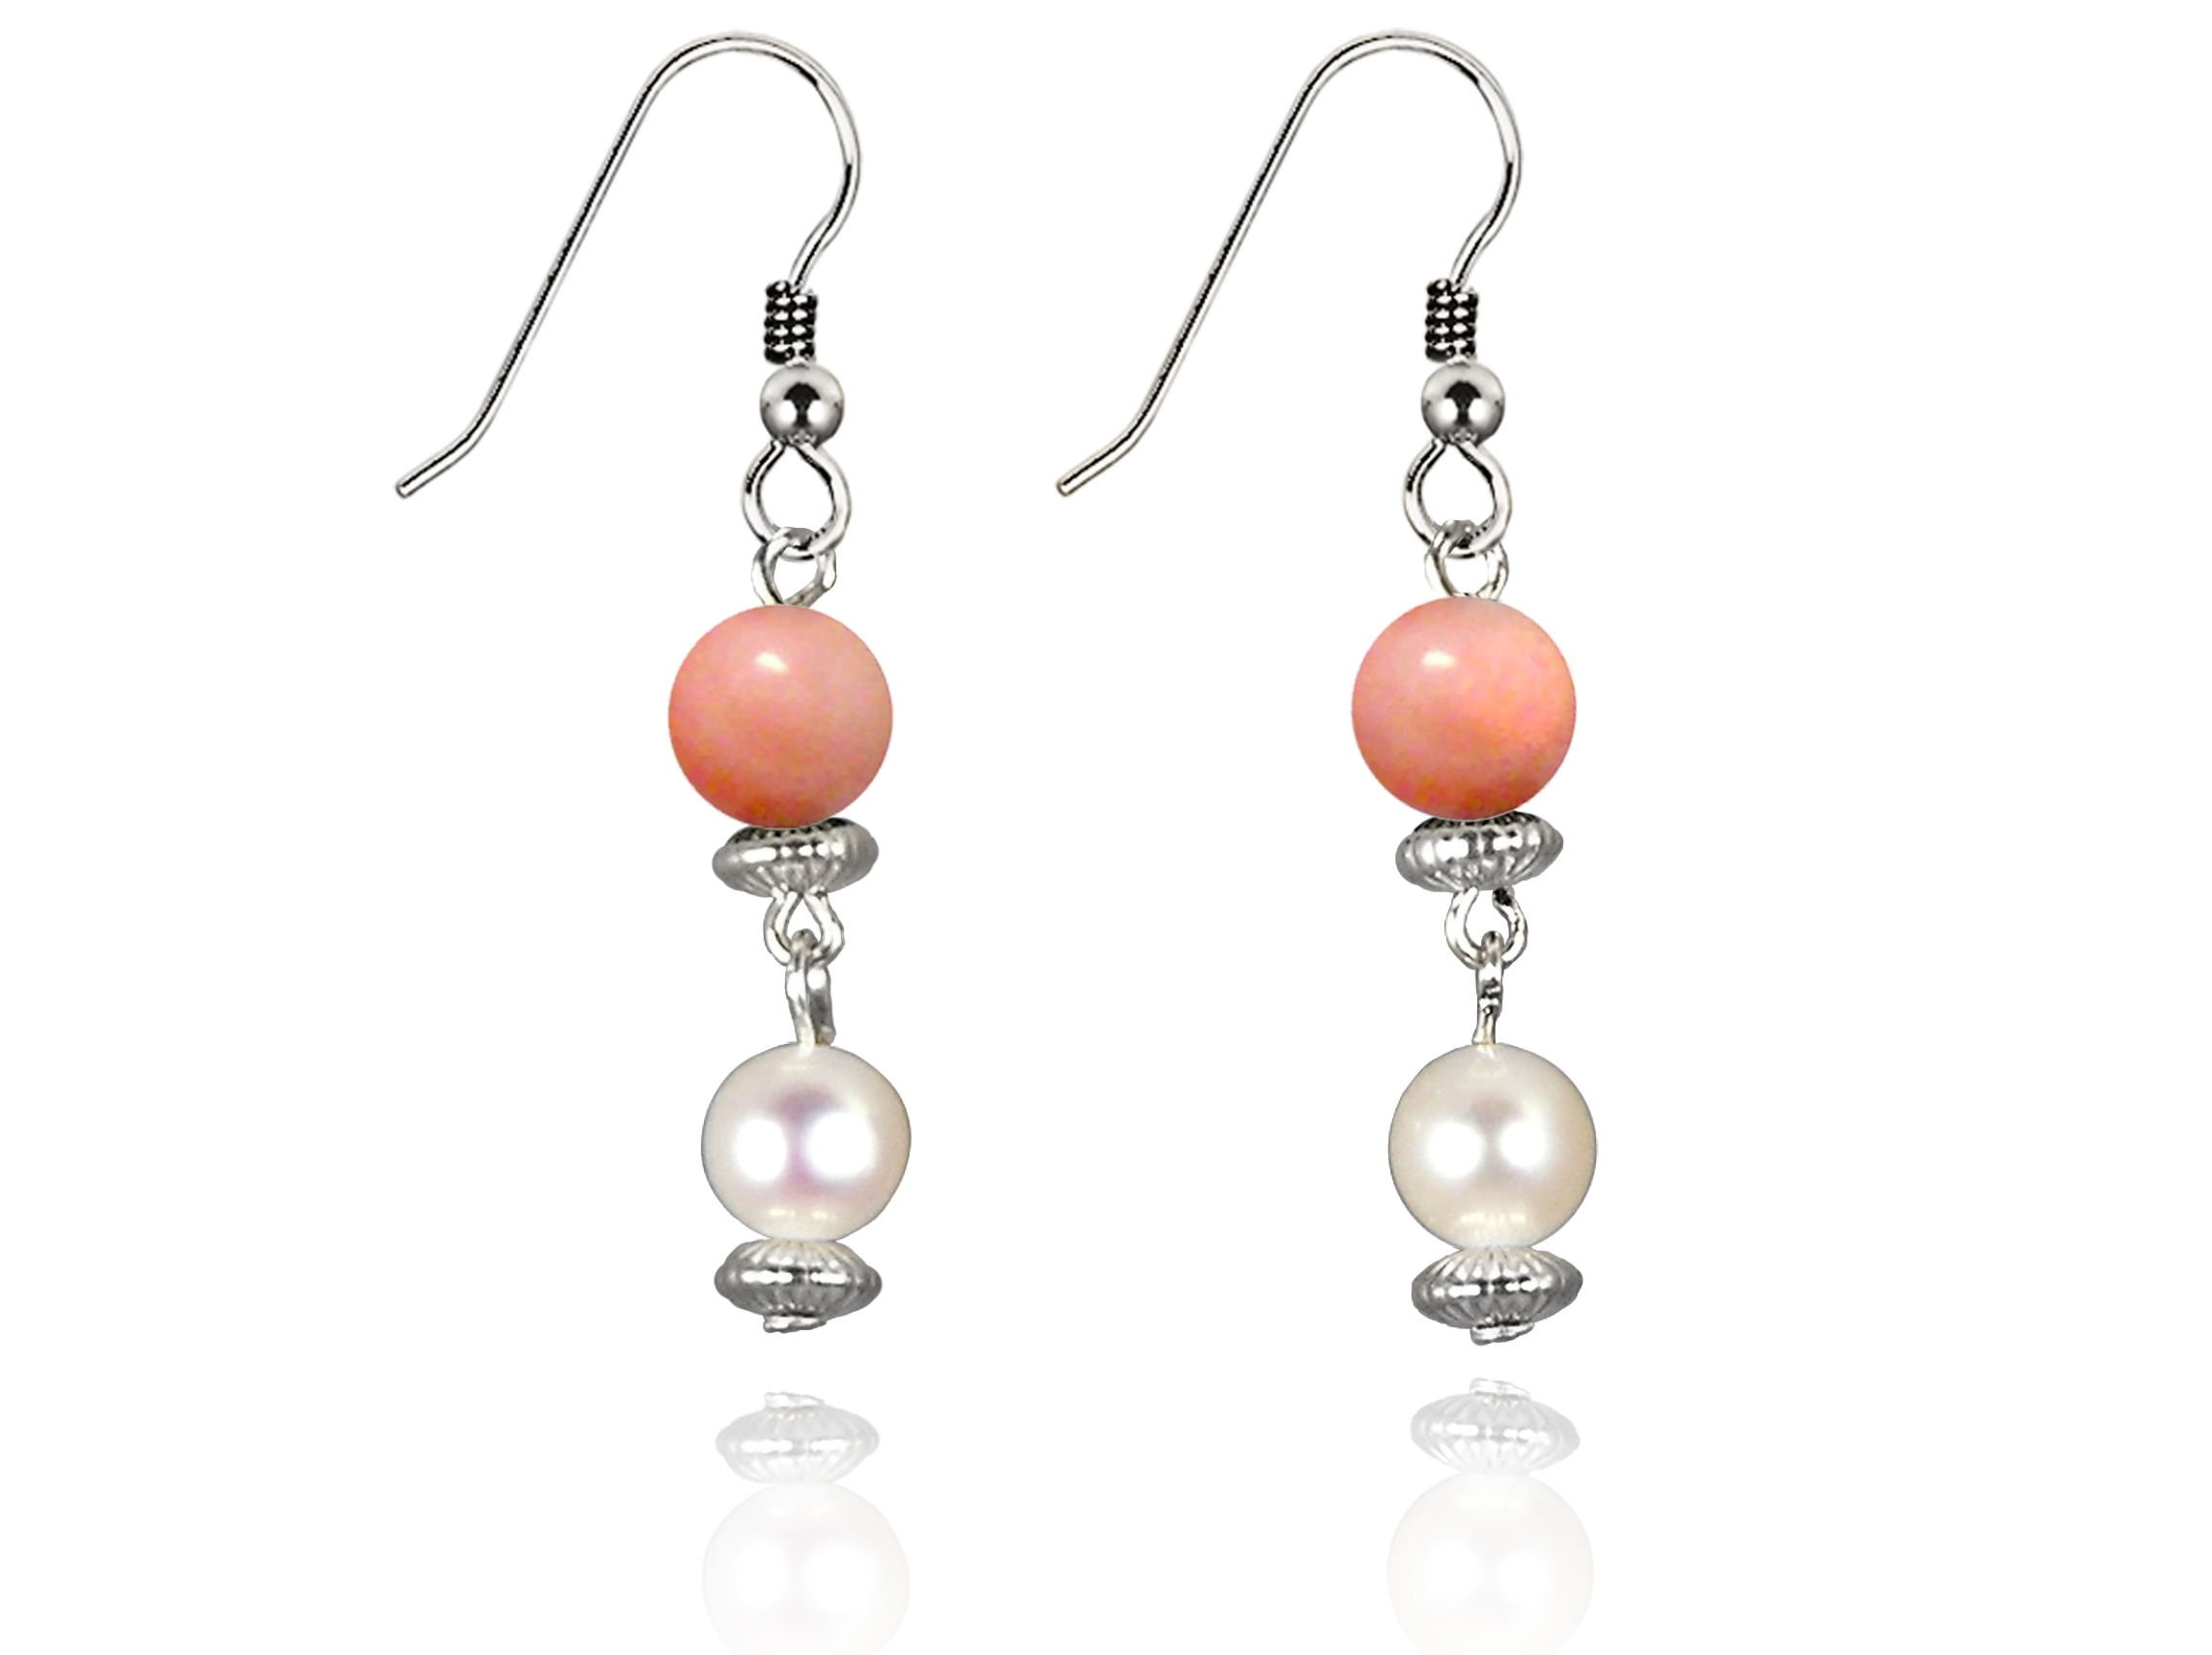 Freshwater Pearl Earrings with Pink Coral in Sterling Silver